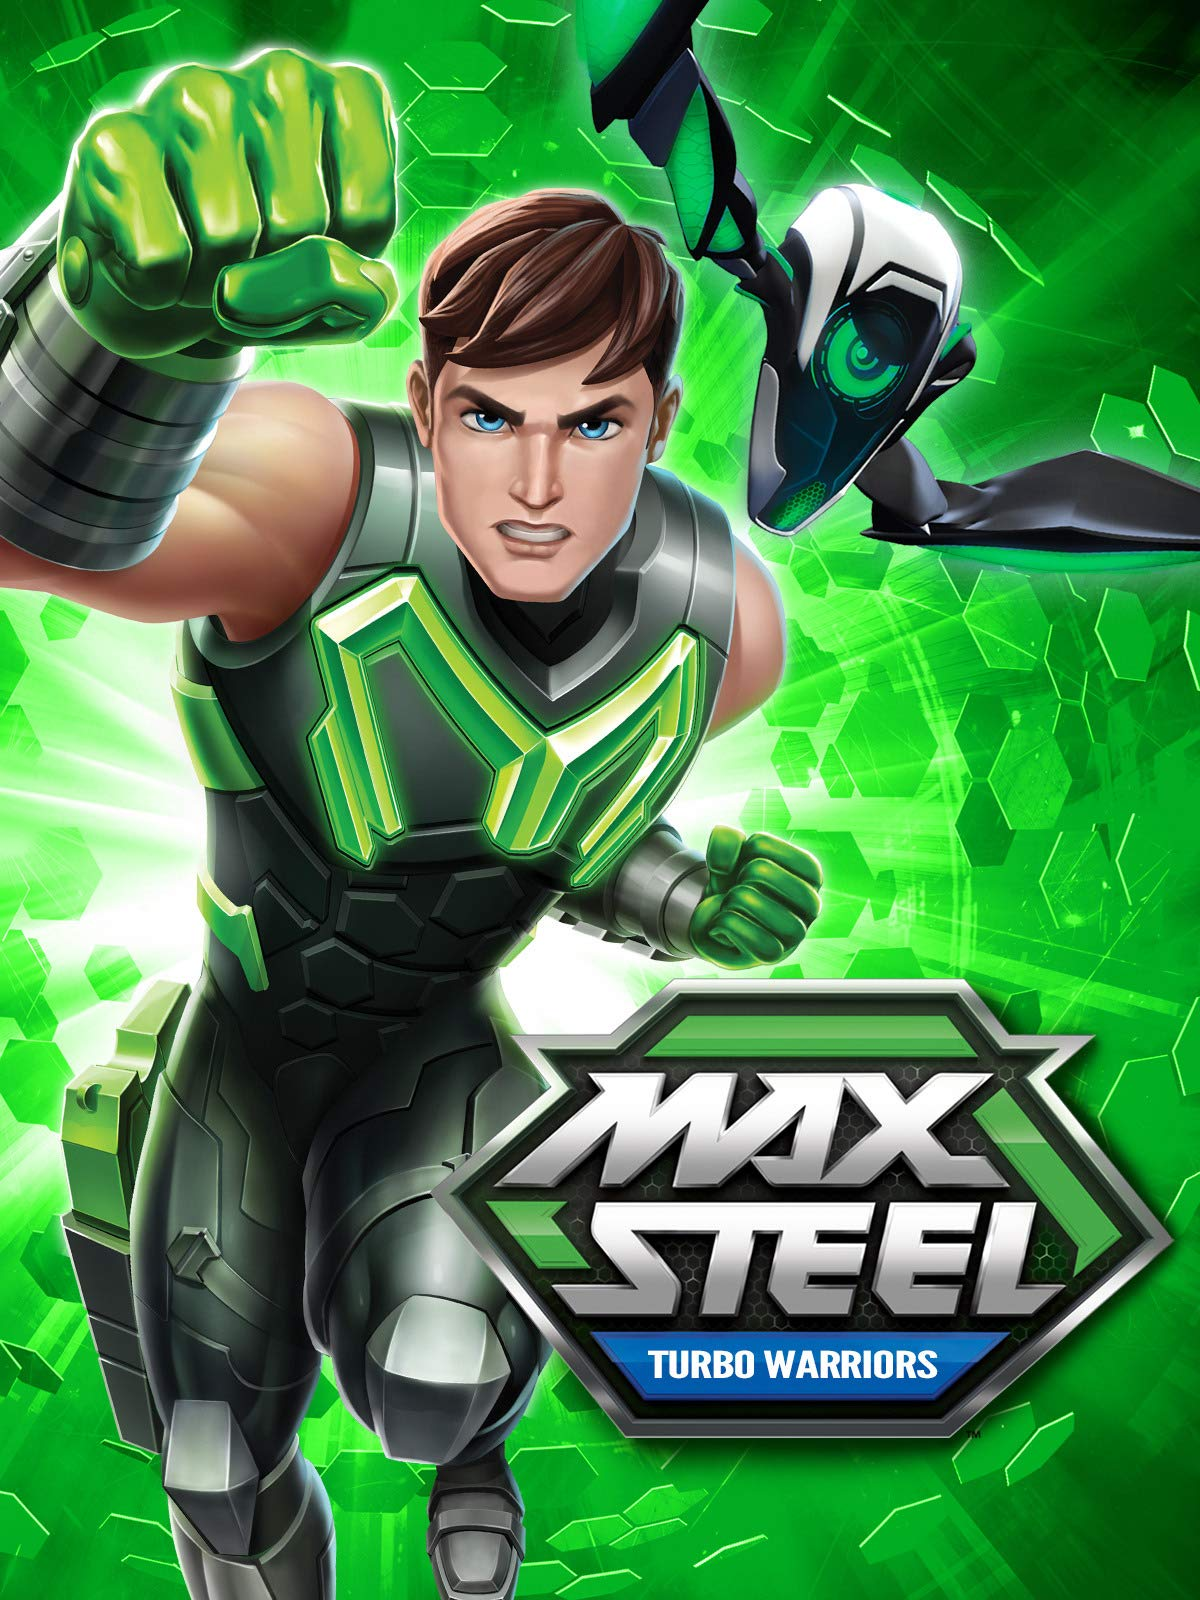 Max Steel Turbo Warriors on Amazon Prime Video UK